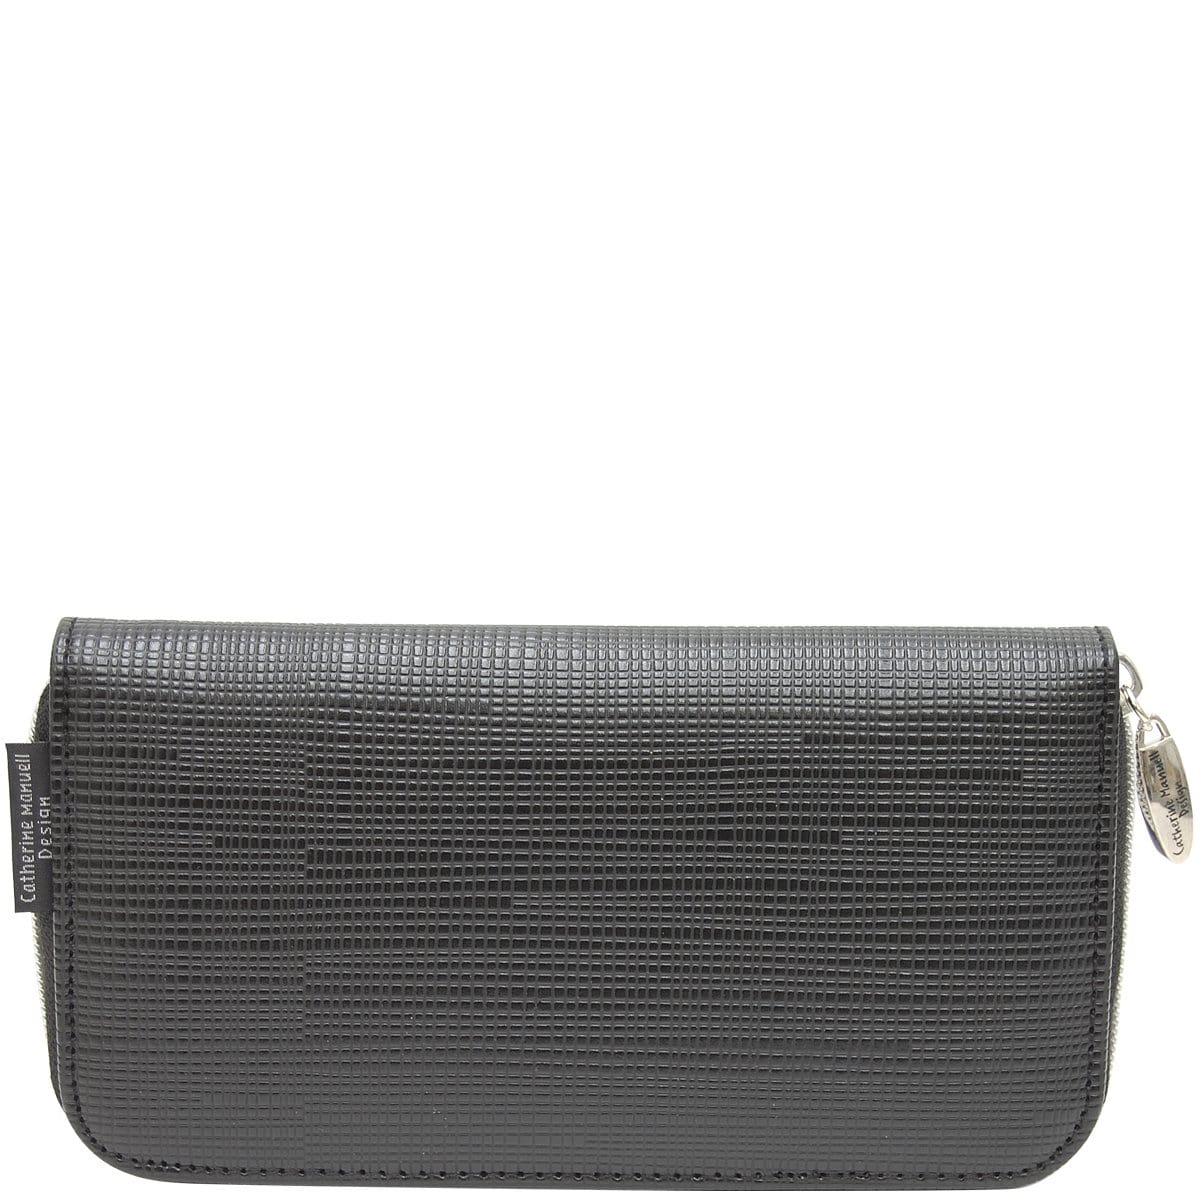 Curved Zip Section Wallet - Black Criss Cross